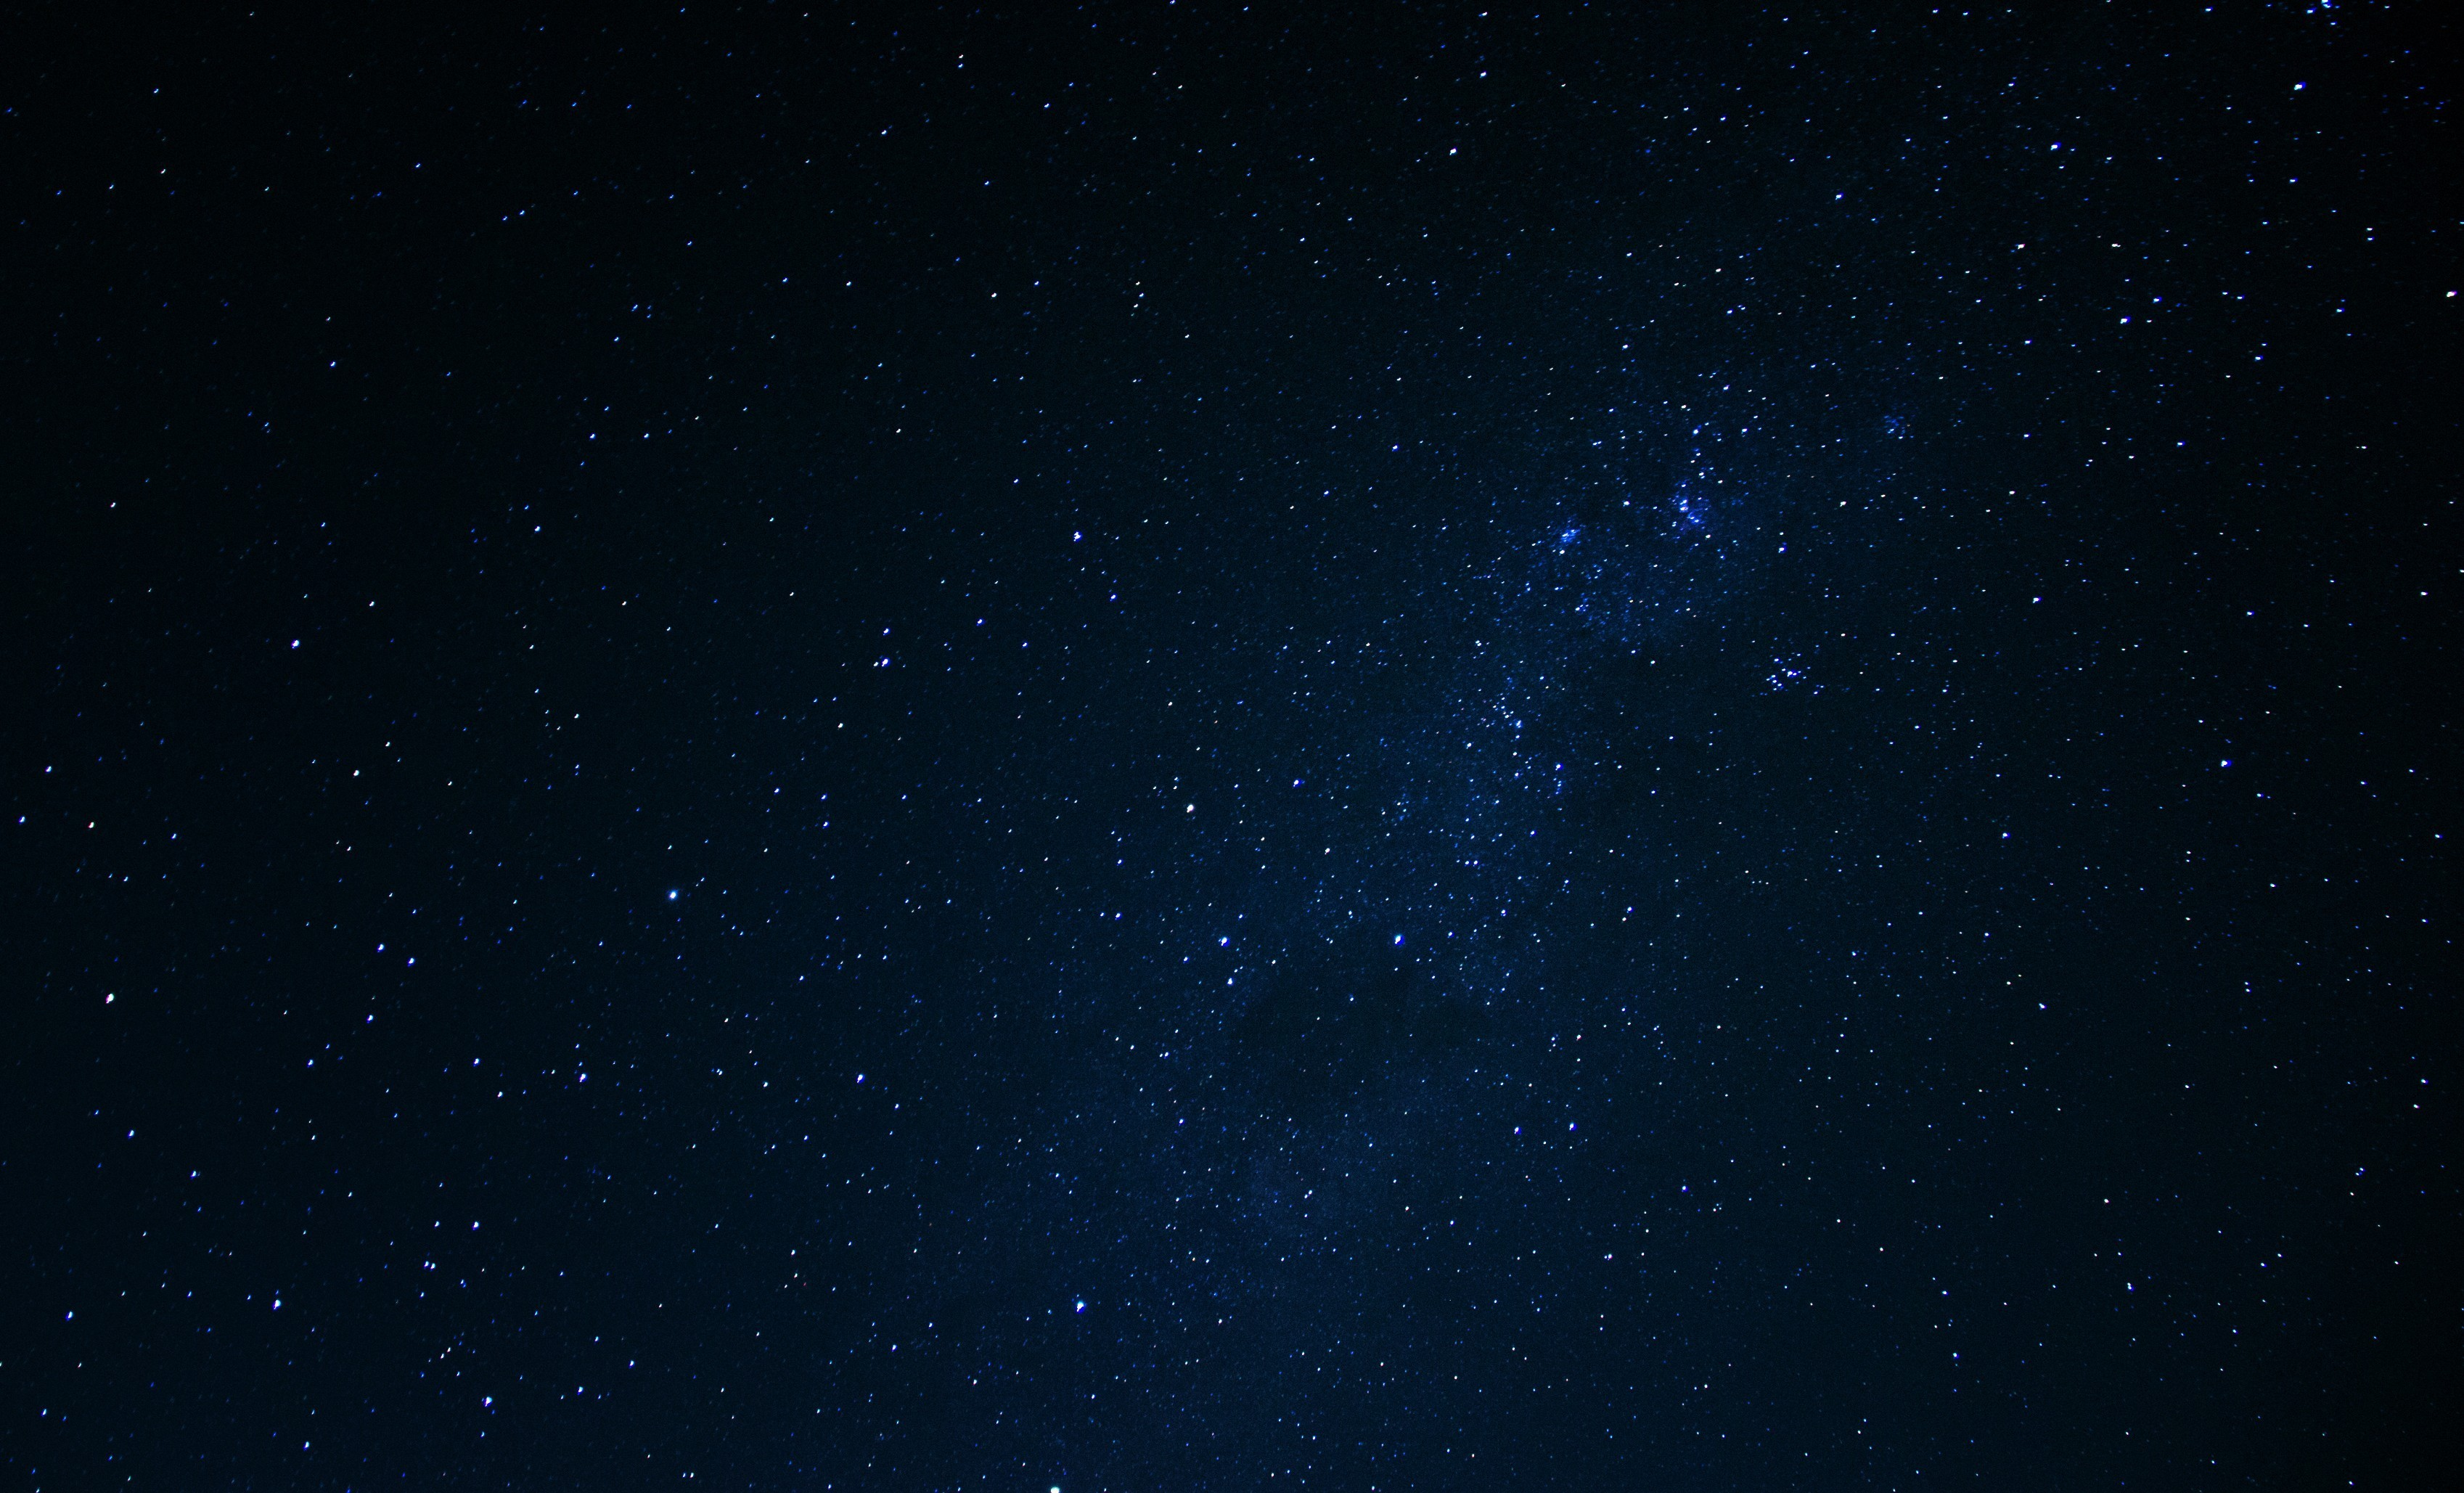 Outer space stars wallpaper